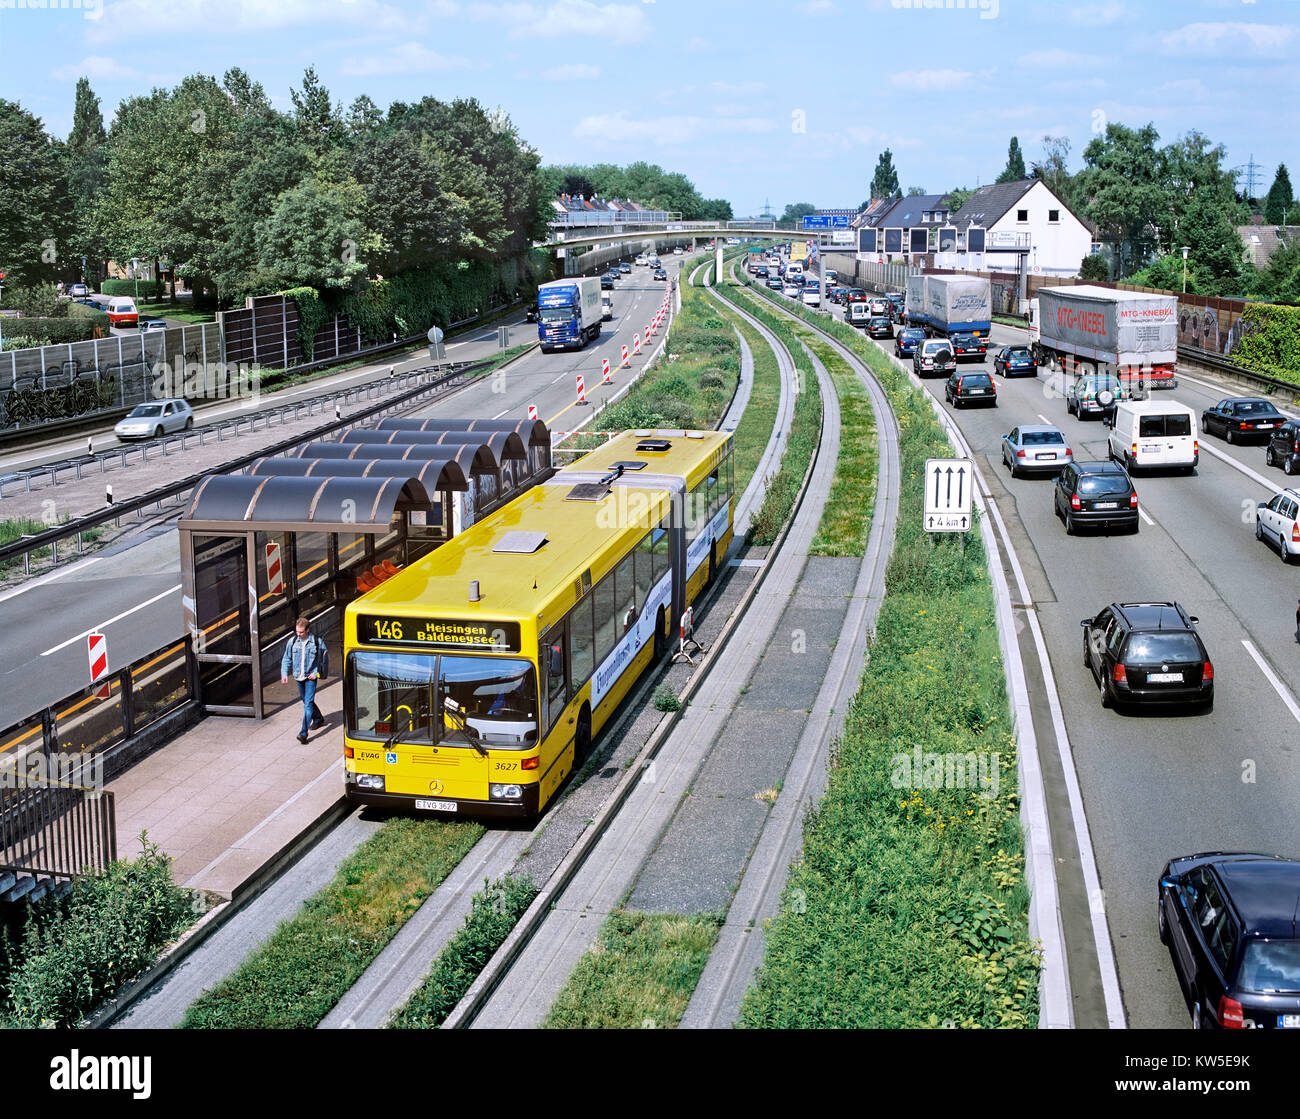 A passenger gets off an O-Bahn 'guided bus' on the outskirts of Essen, Germany. - Stock Image